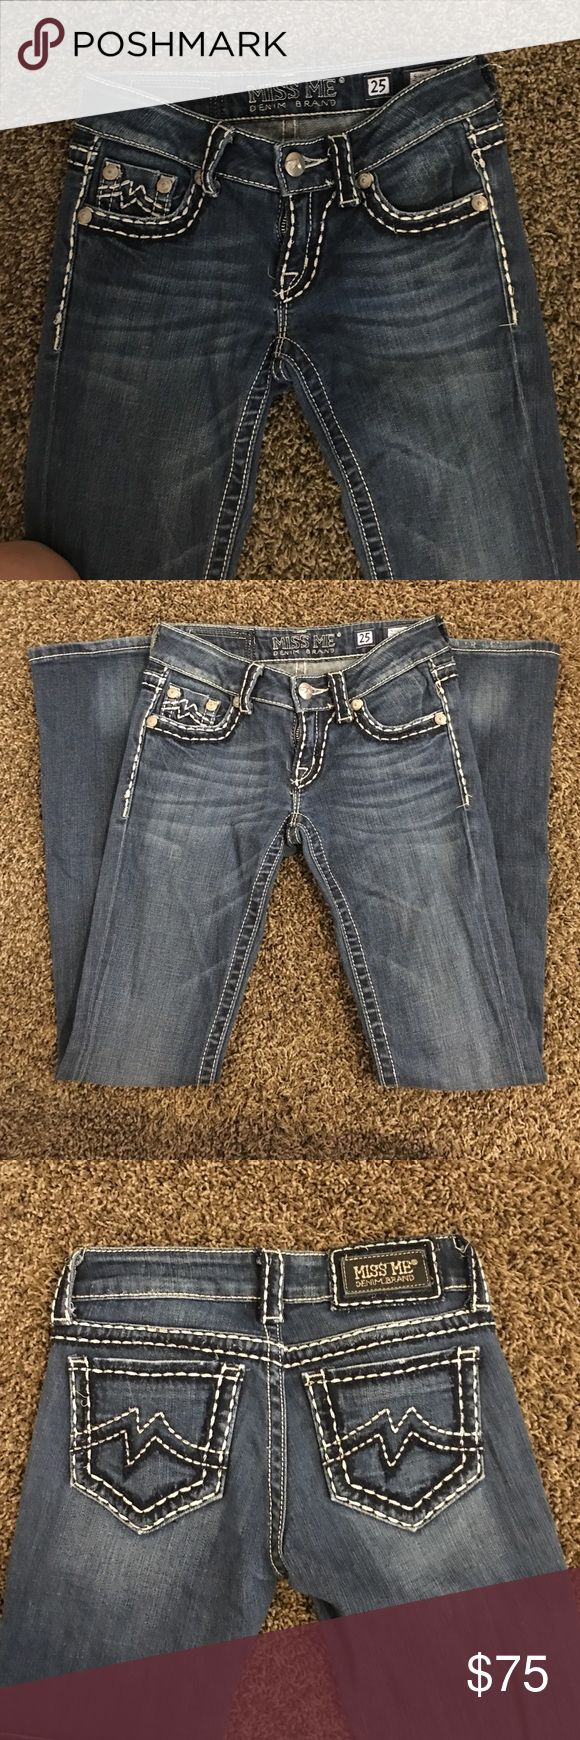 Miss Me Brand Jeans Straight leg Miss Me jeans white thick stitching. Great condition style:sunny boot Miss Me Jeans Straight Leg